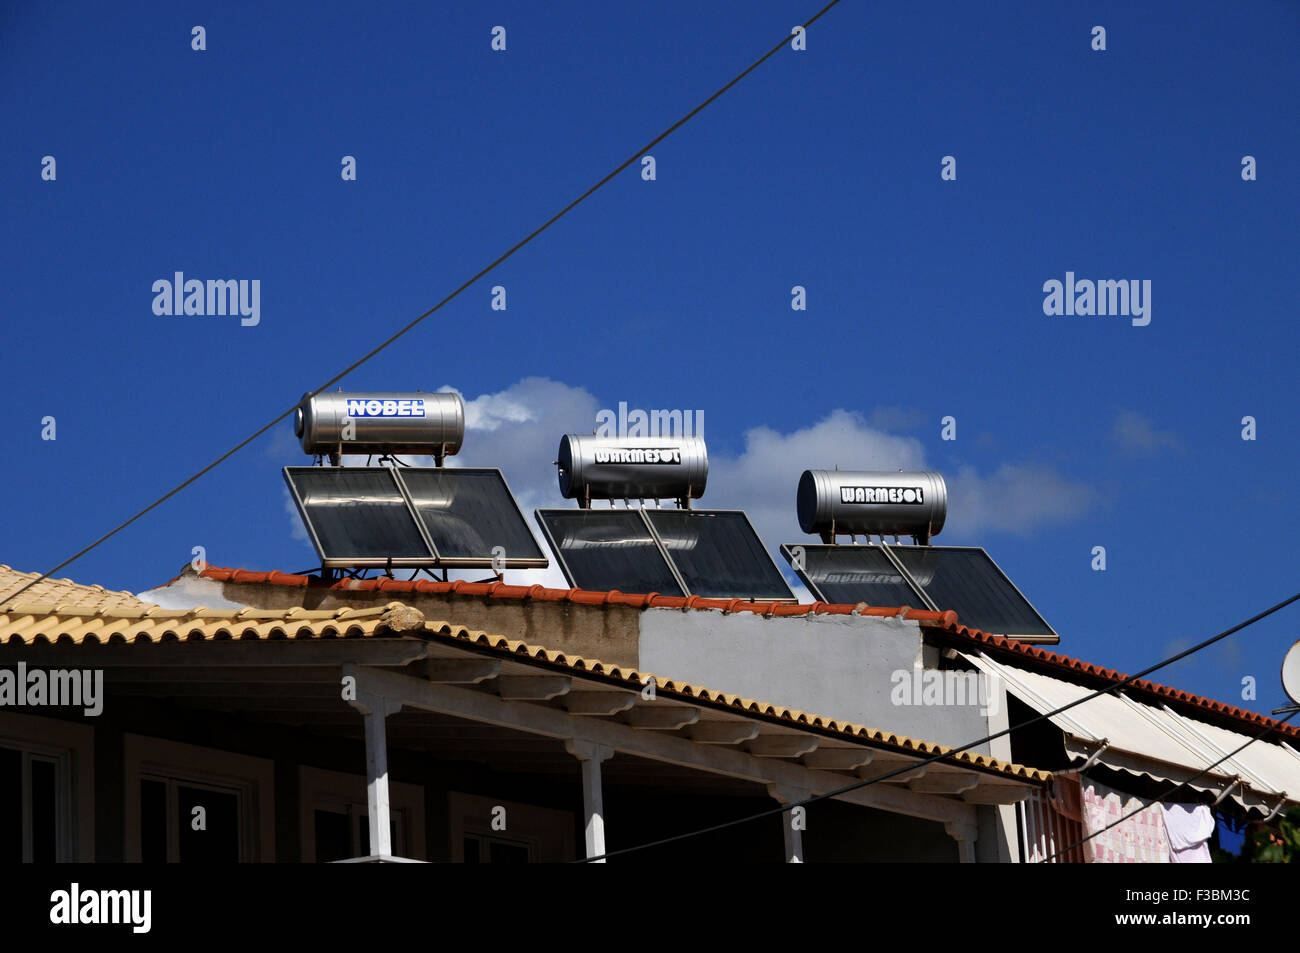 Solar water heaters on the roof of a house in the small Greek village of Giolova in the Peloponnese. - Stock Image